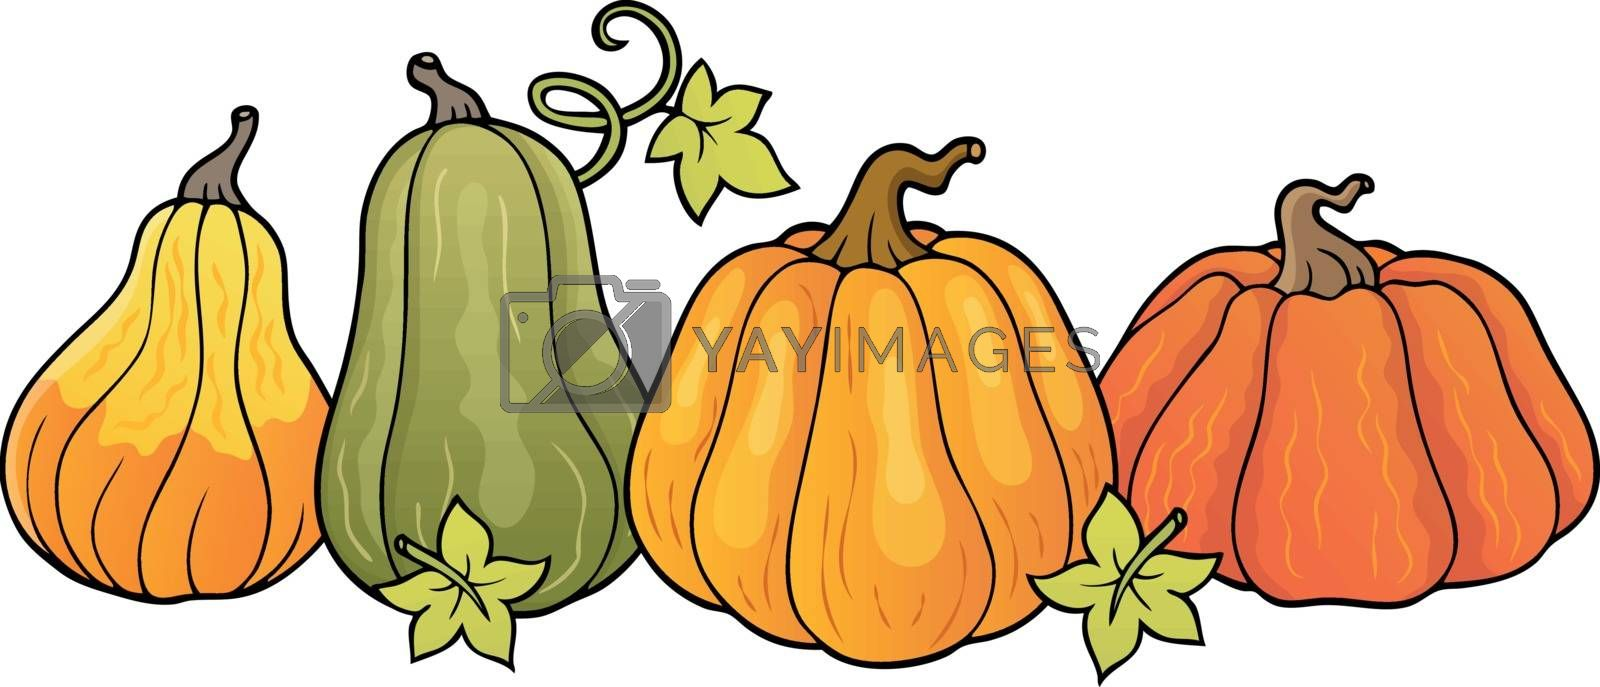 Pumpkins theme image 1 - eps10 vector illustration.